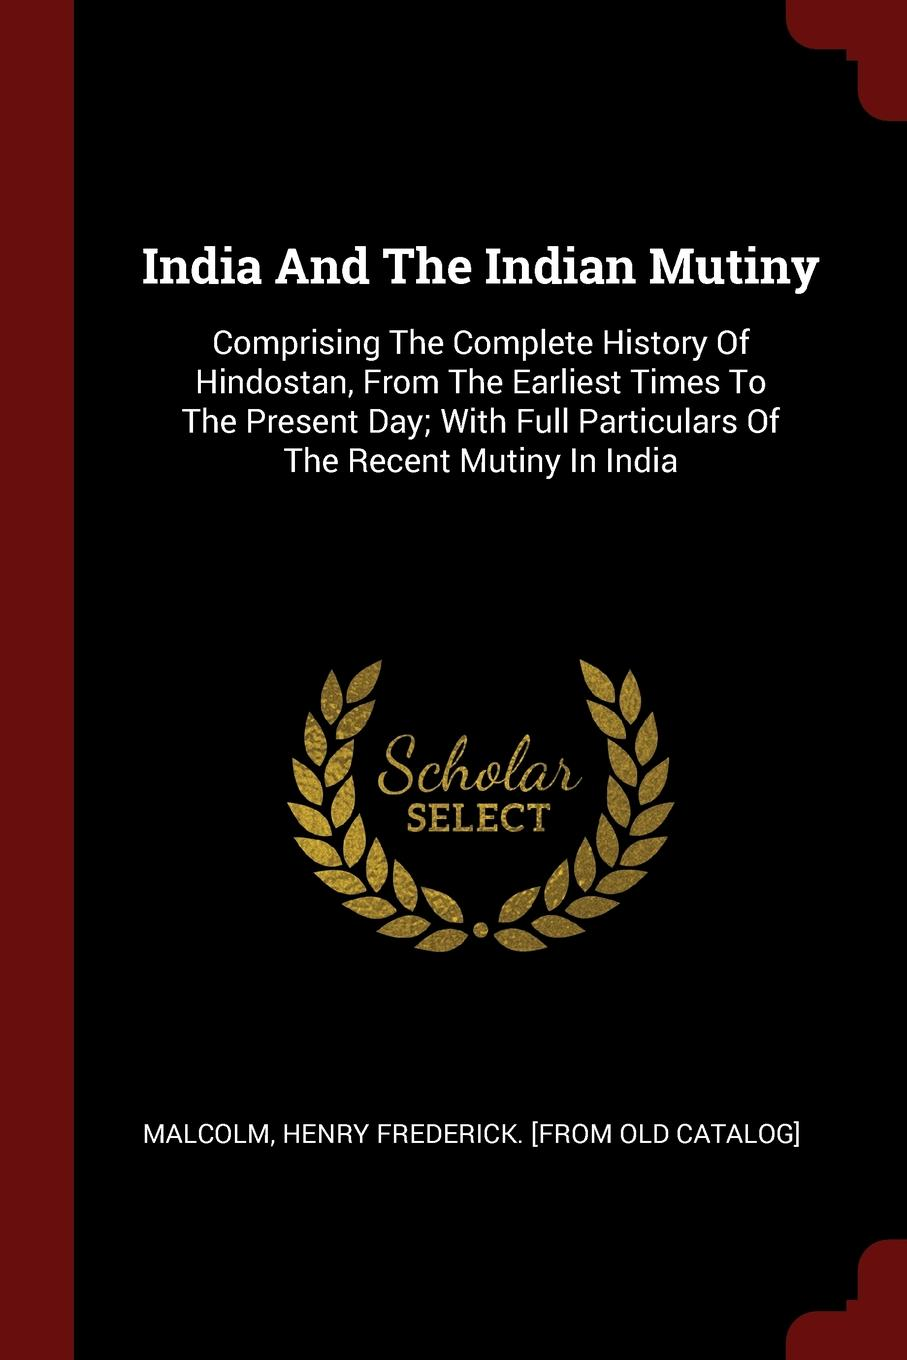 India And The Indian Mutiny. Comprising The Complete History Of Hindostan, From The Earliest Times To The Present Day; With Full Particulars Of The Recent Mutiny In India charles richard tuttle the centennial northwest an illustrated history of the northwest being a full and complete civil political and military history of this great section of the united states from its earliest settlement to the present time